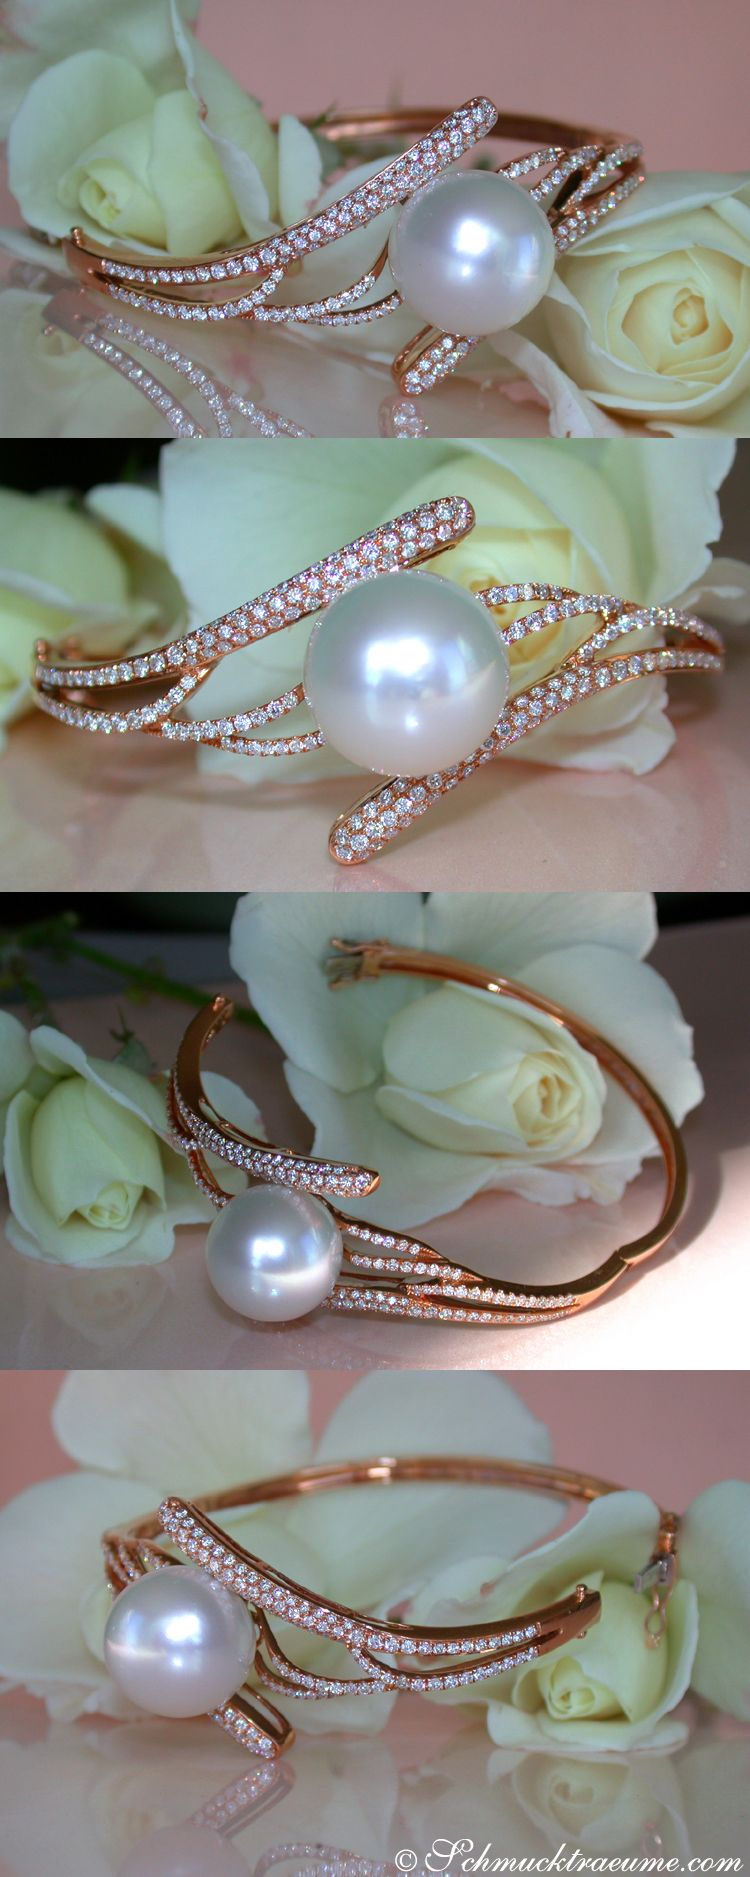 Glamorous Diamond (1,76 ct. G-VS) Bangle with a white 15mm Southsea Pearl in Rosegold | Exquisiter Brillanten Armreif mit einer 15 mm Südseeperle in Roségold | Visit: schmucktraeume.com